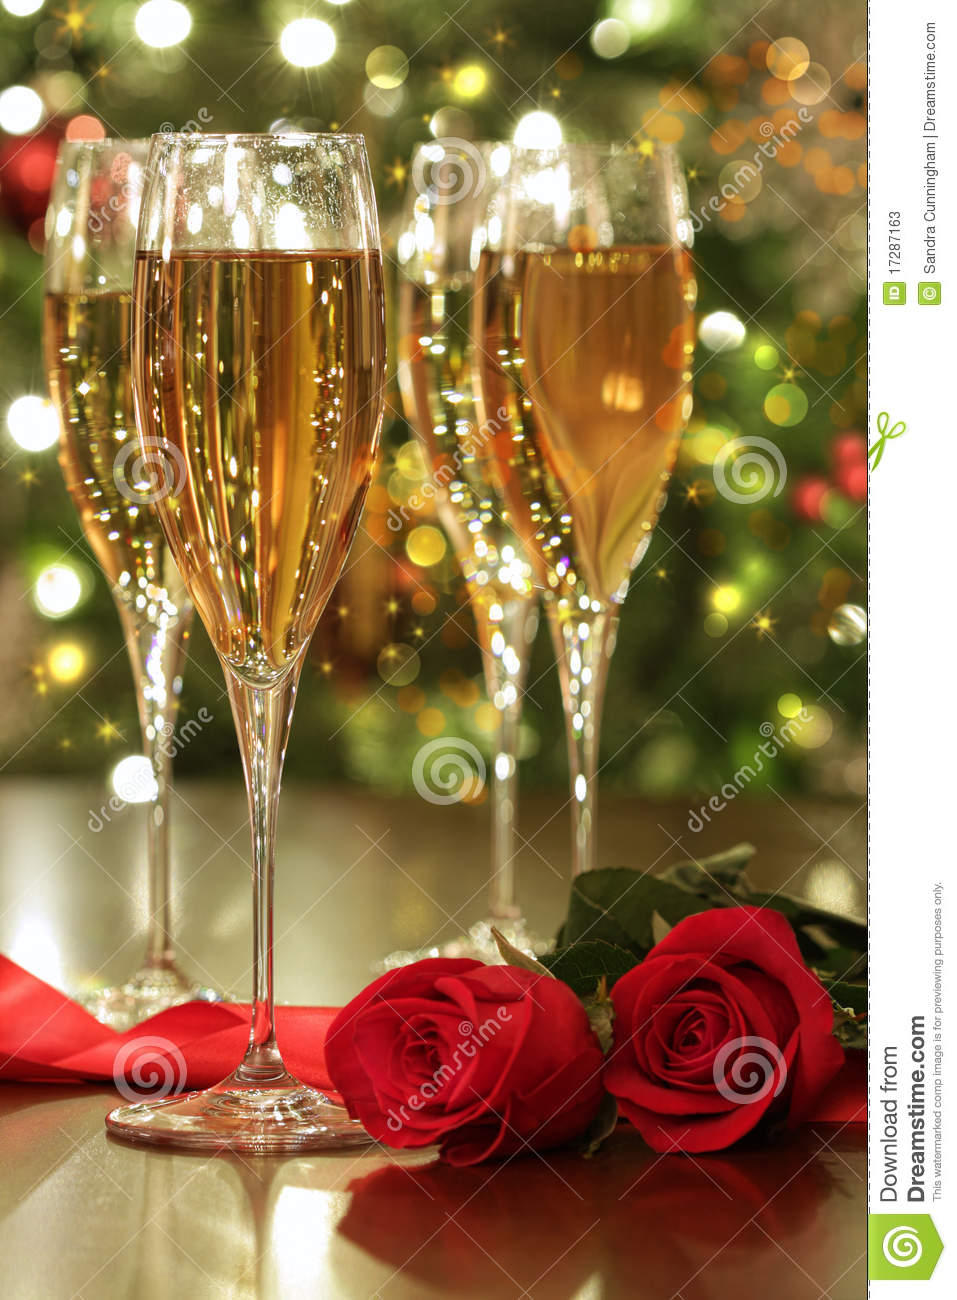 Wallpaper San Valentin 3d Glasses Of Champagne And Red Roses Stock Photos Image